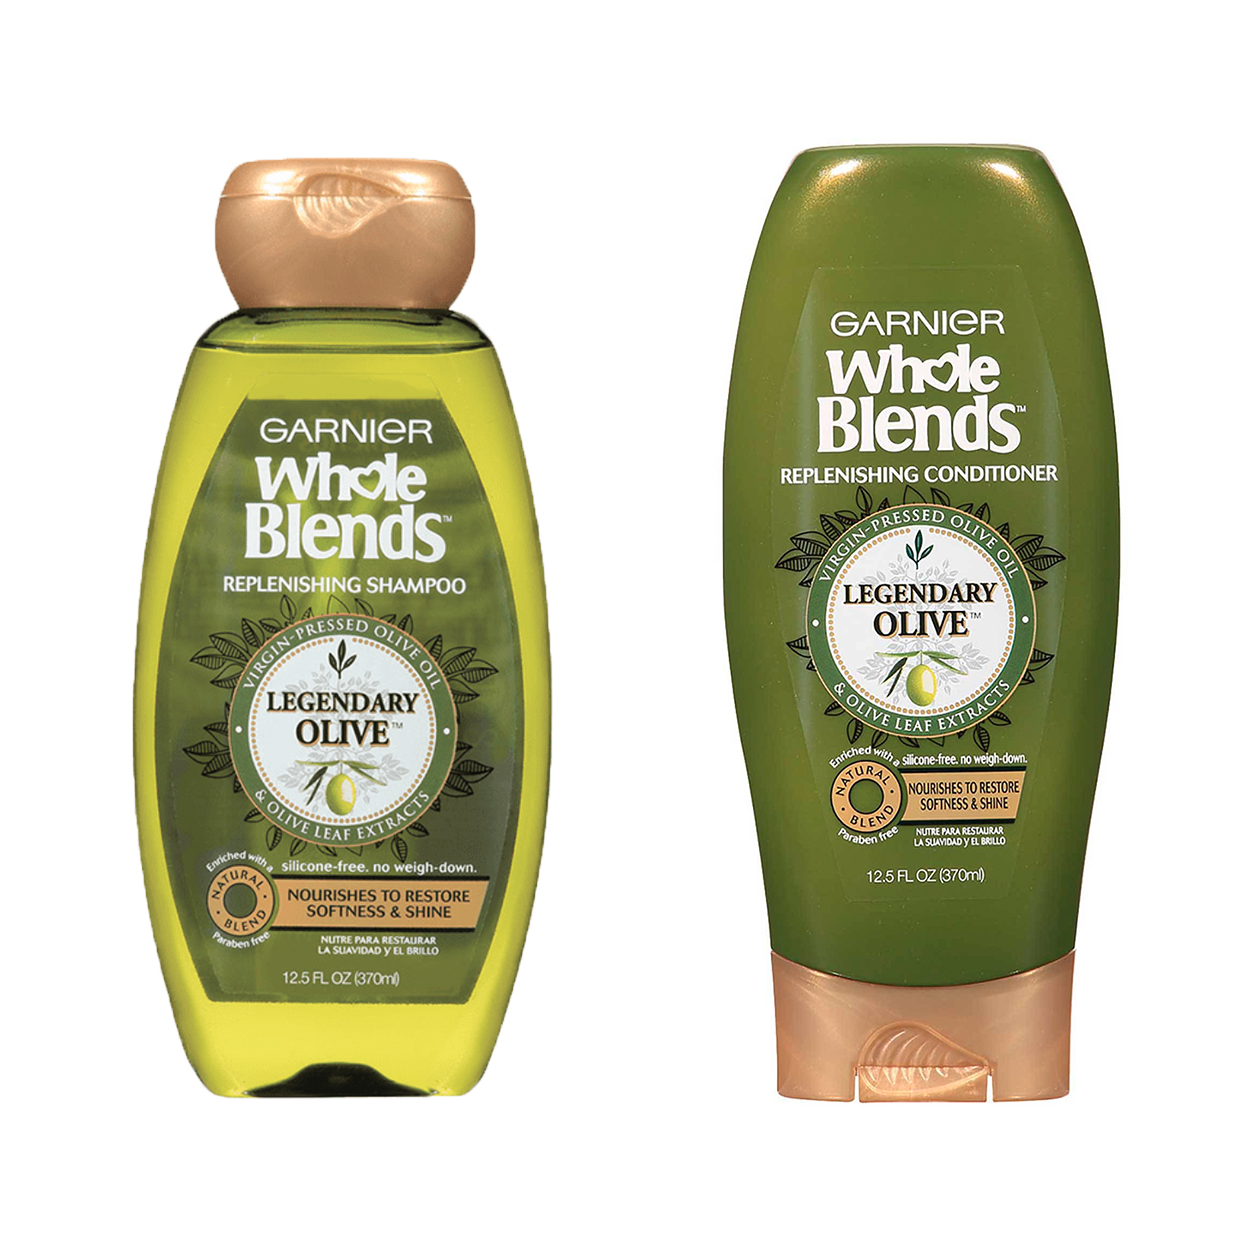 Garnier Whole Blends Legendary Olive Shampoo and Conditioner